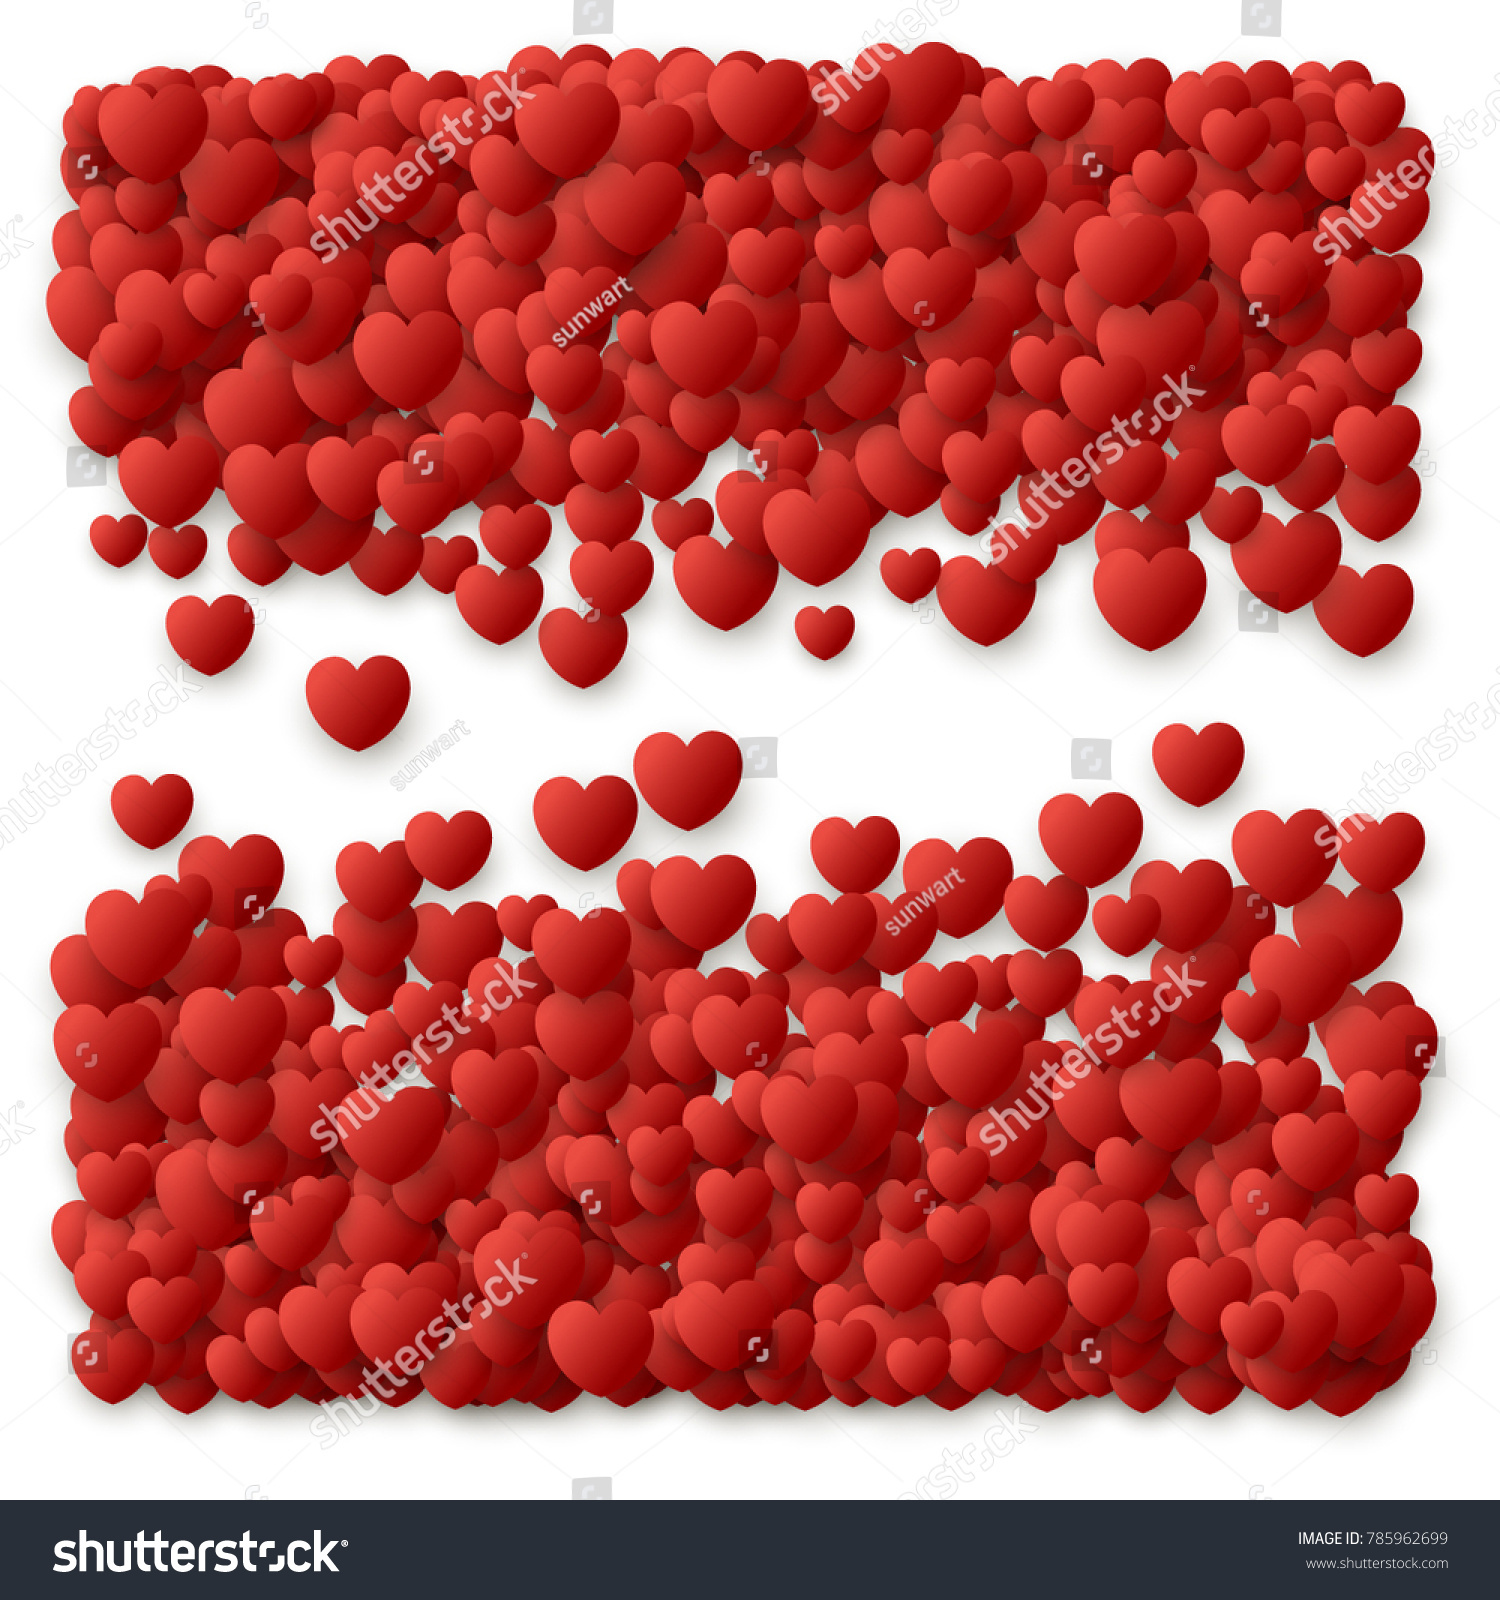 Heart love symbol border valentines day stock vector 785962699 heart love symbol border for valentines day red hearts flying confetti background border for biocorpaavc